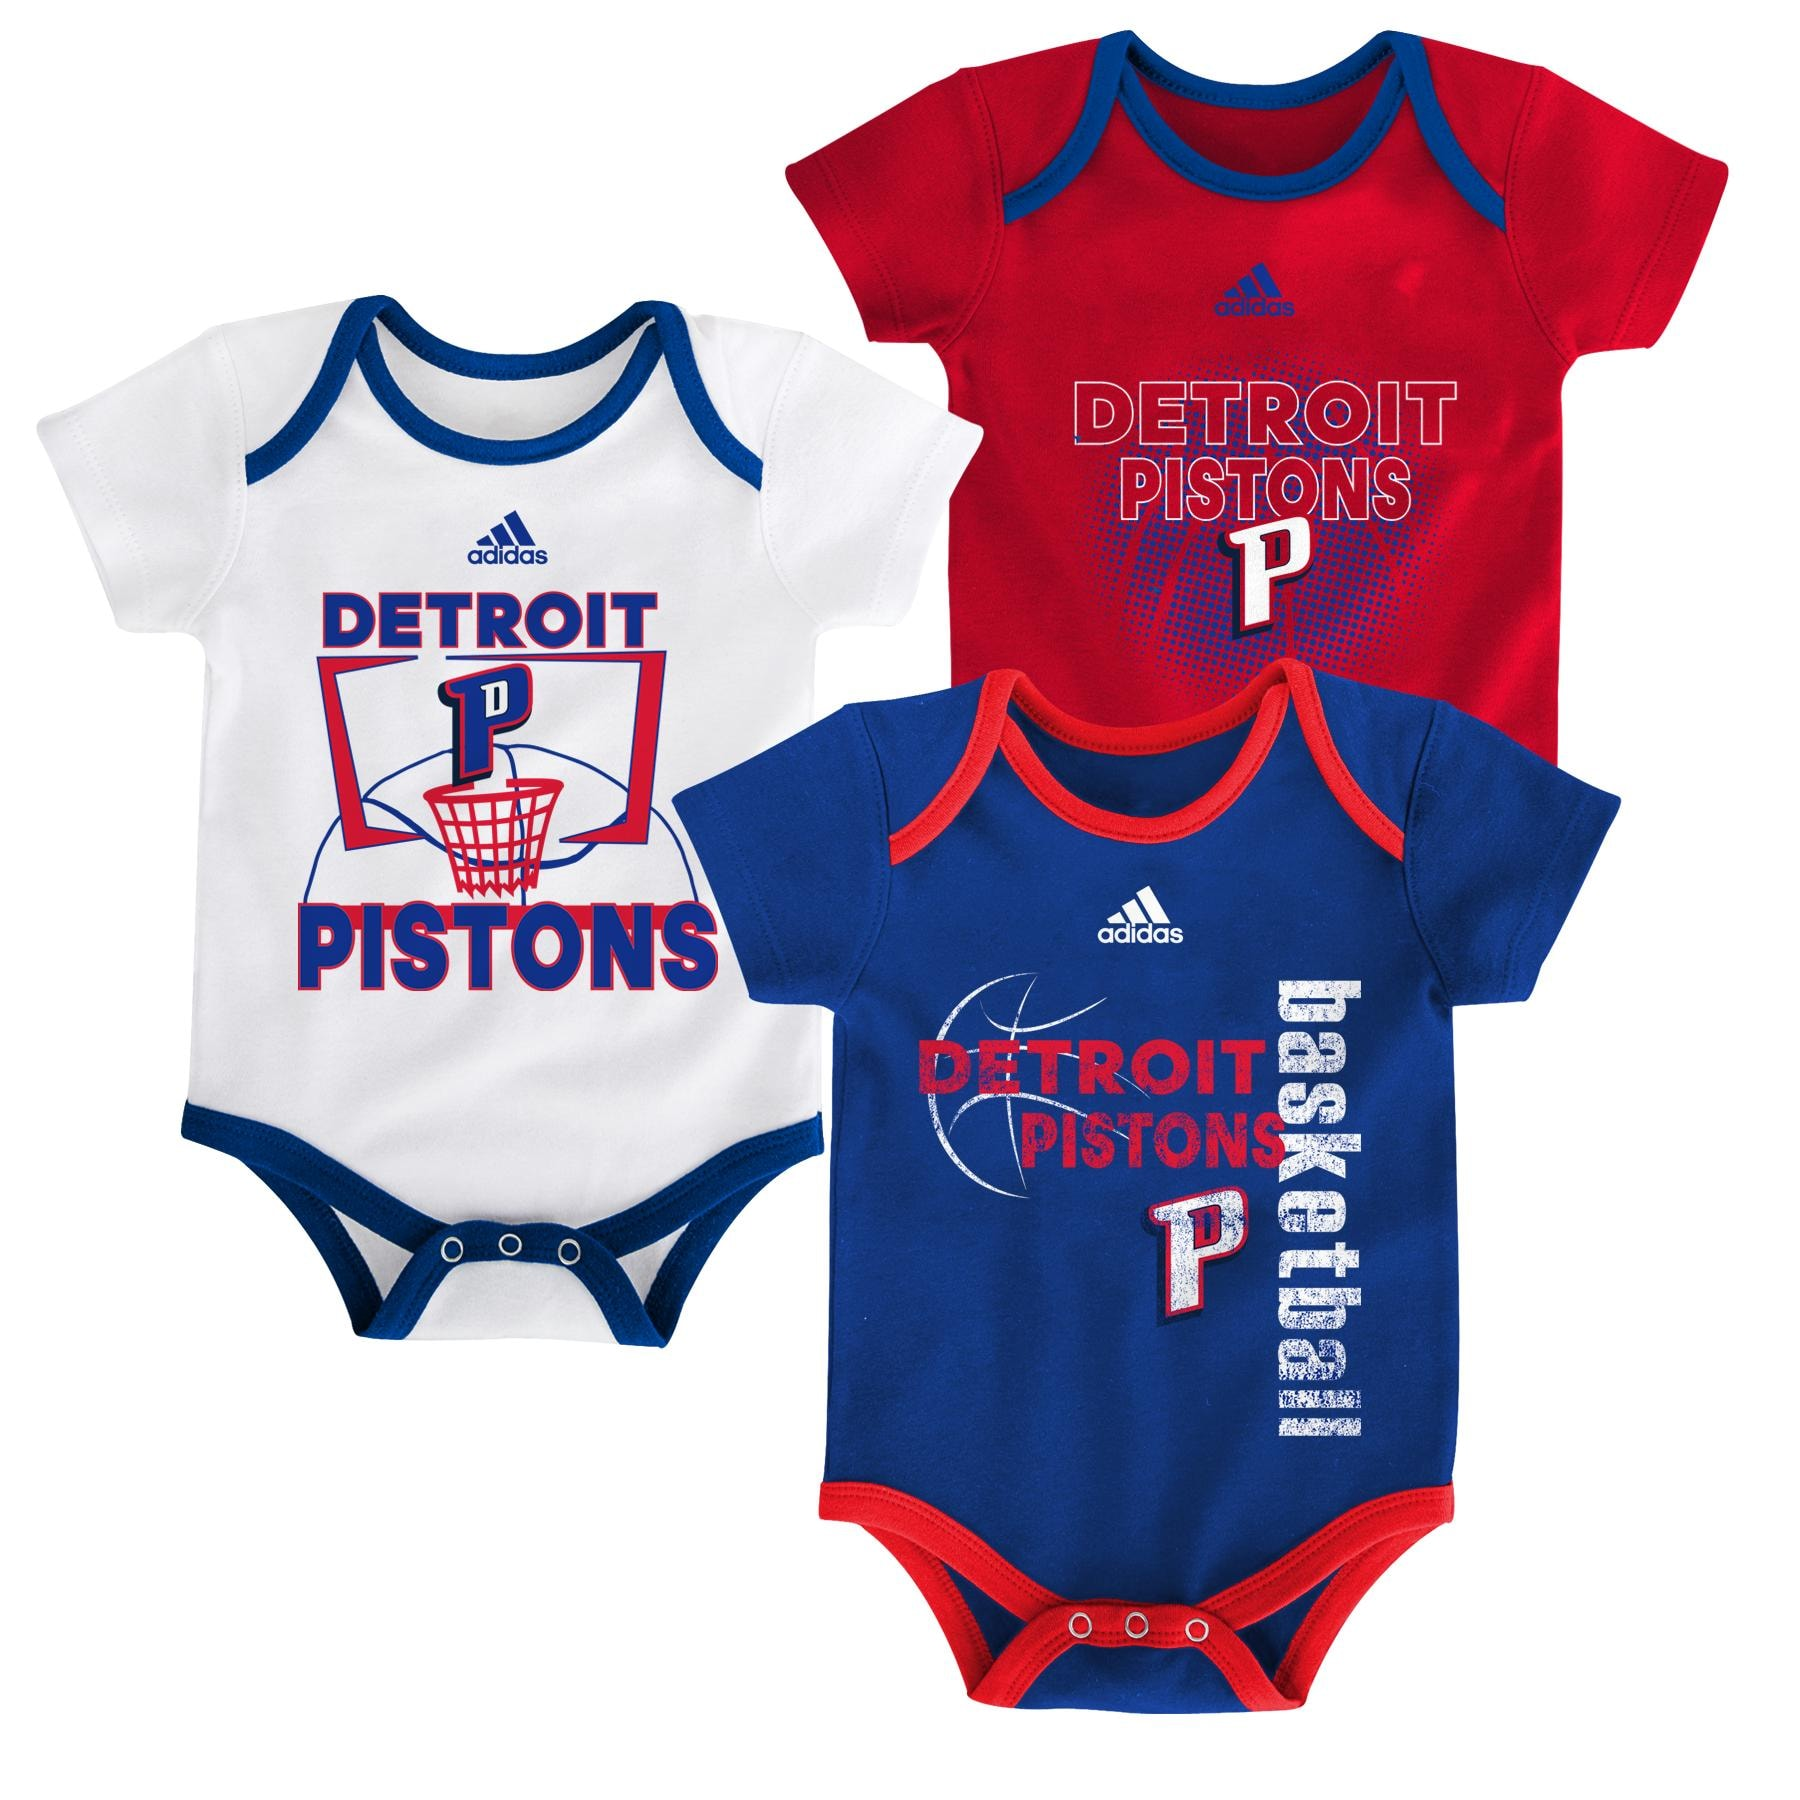 Aflojar Ídolo Chicle  Detroit Pistons adidas Newborn & Infant 3-Point Bodysuit Set -  Blue/Red/White - Gear Up For Sports